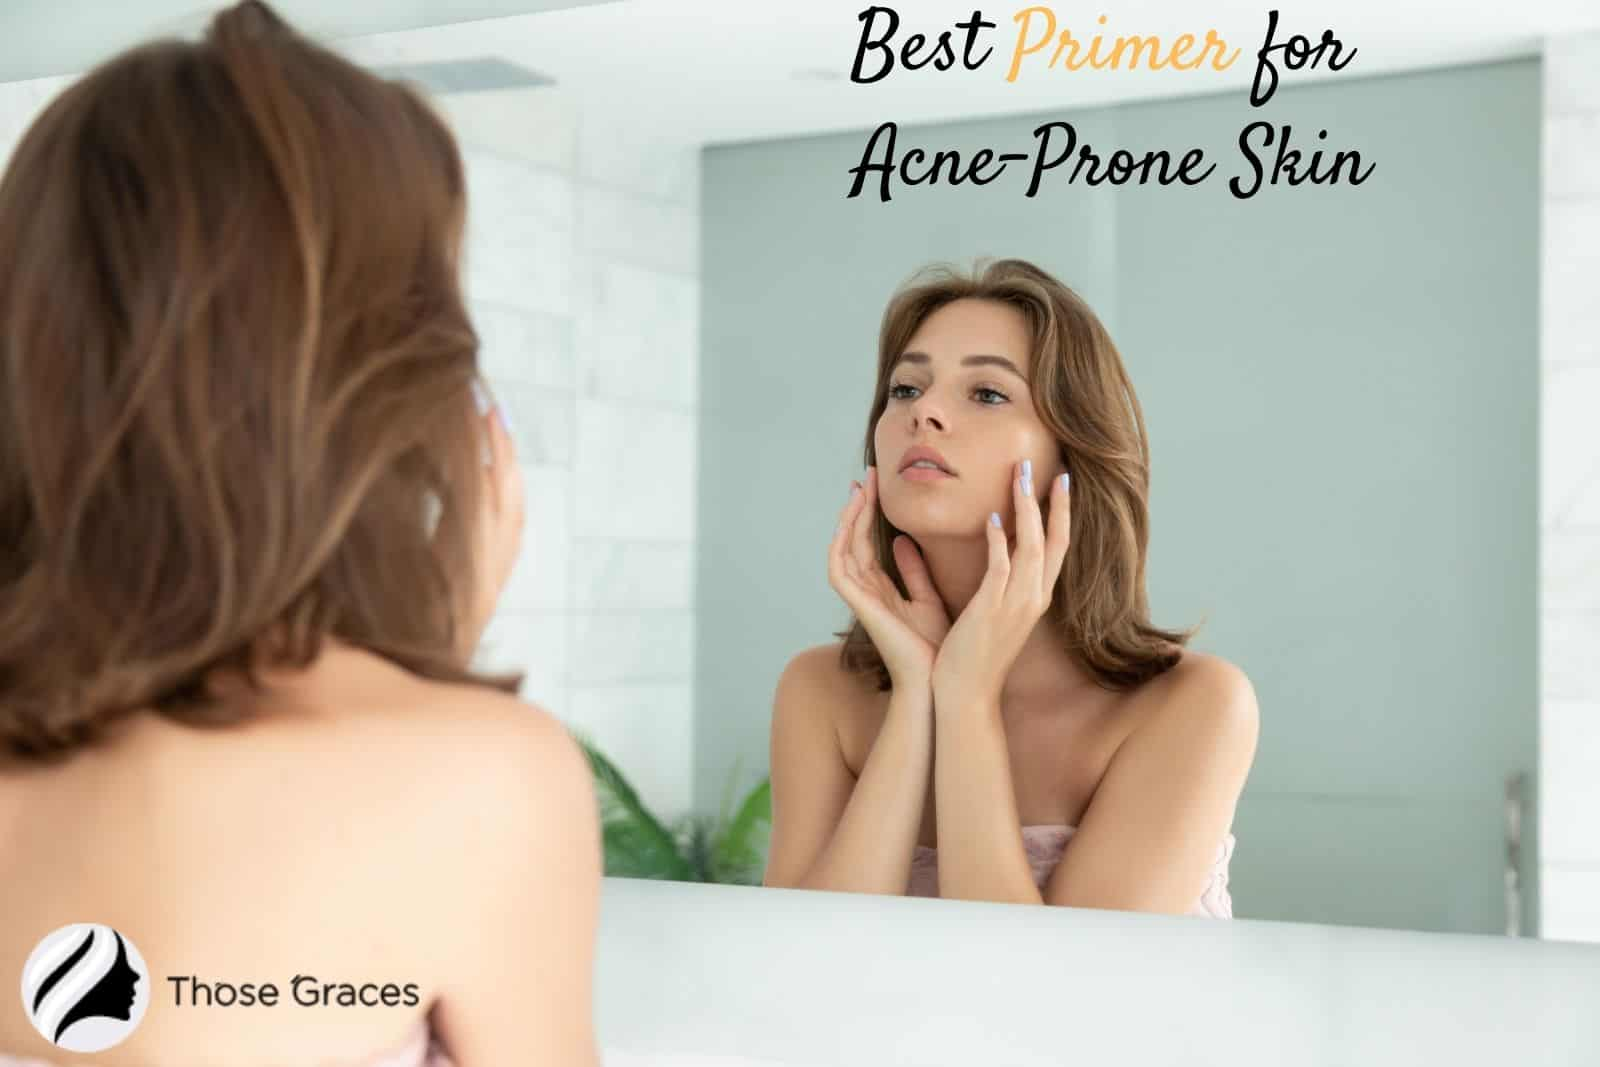 a young lady looking at the mirror after applying the best primer for acne prone skin